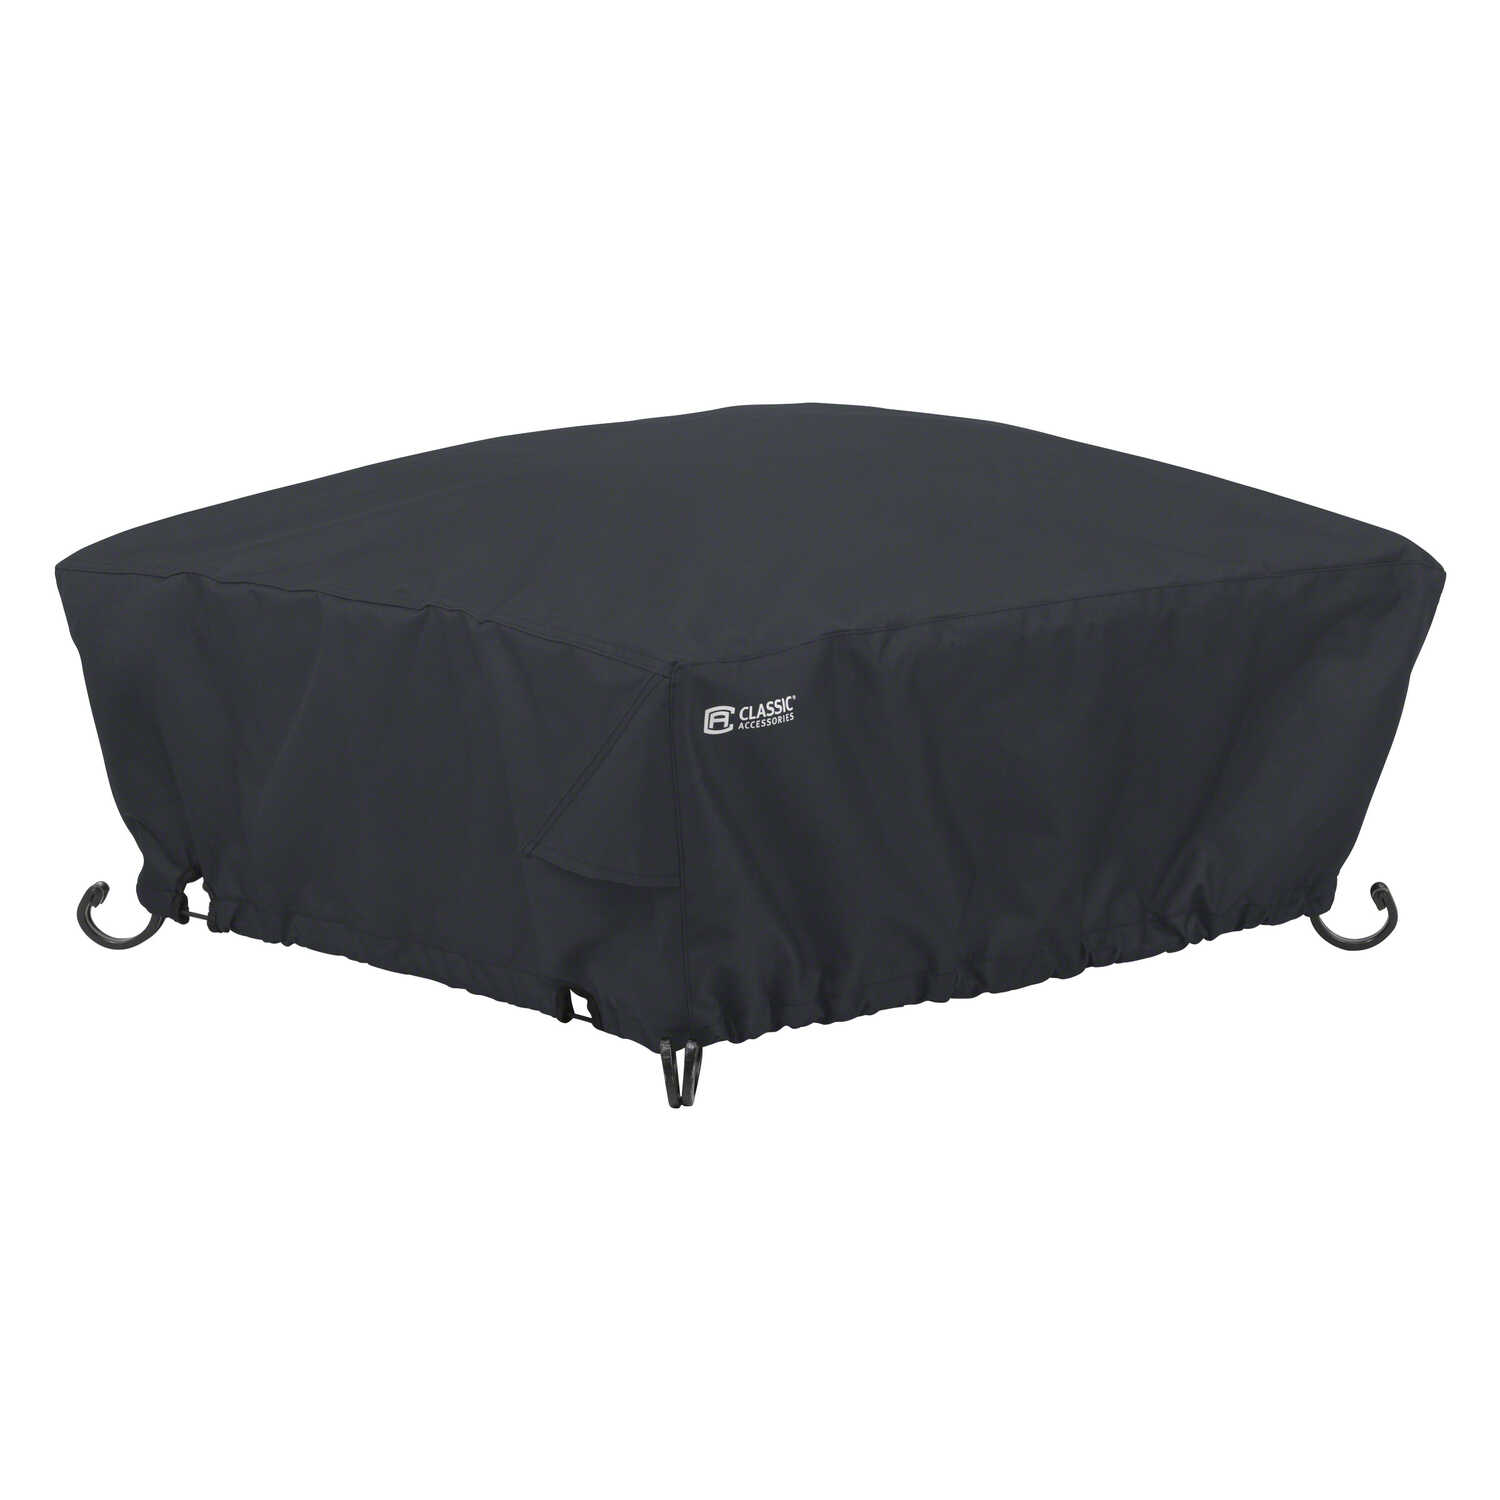 Classic Accessories  12 in. H x 36 in. W x 36 in. L Black  Polyester  Fire Pit Cover